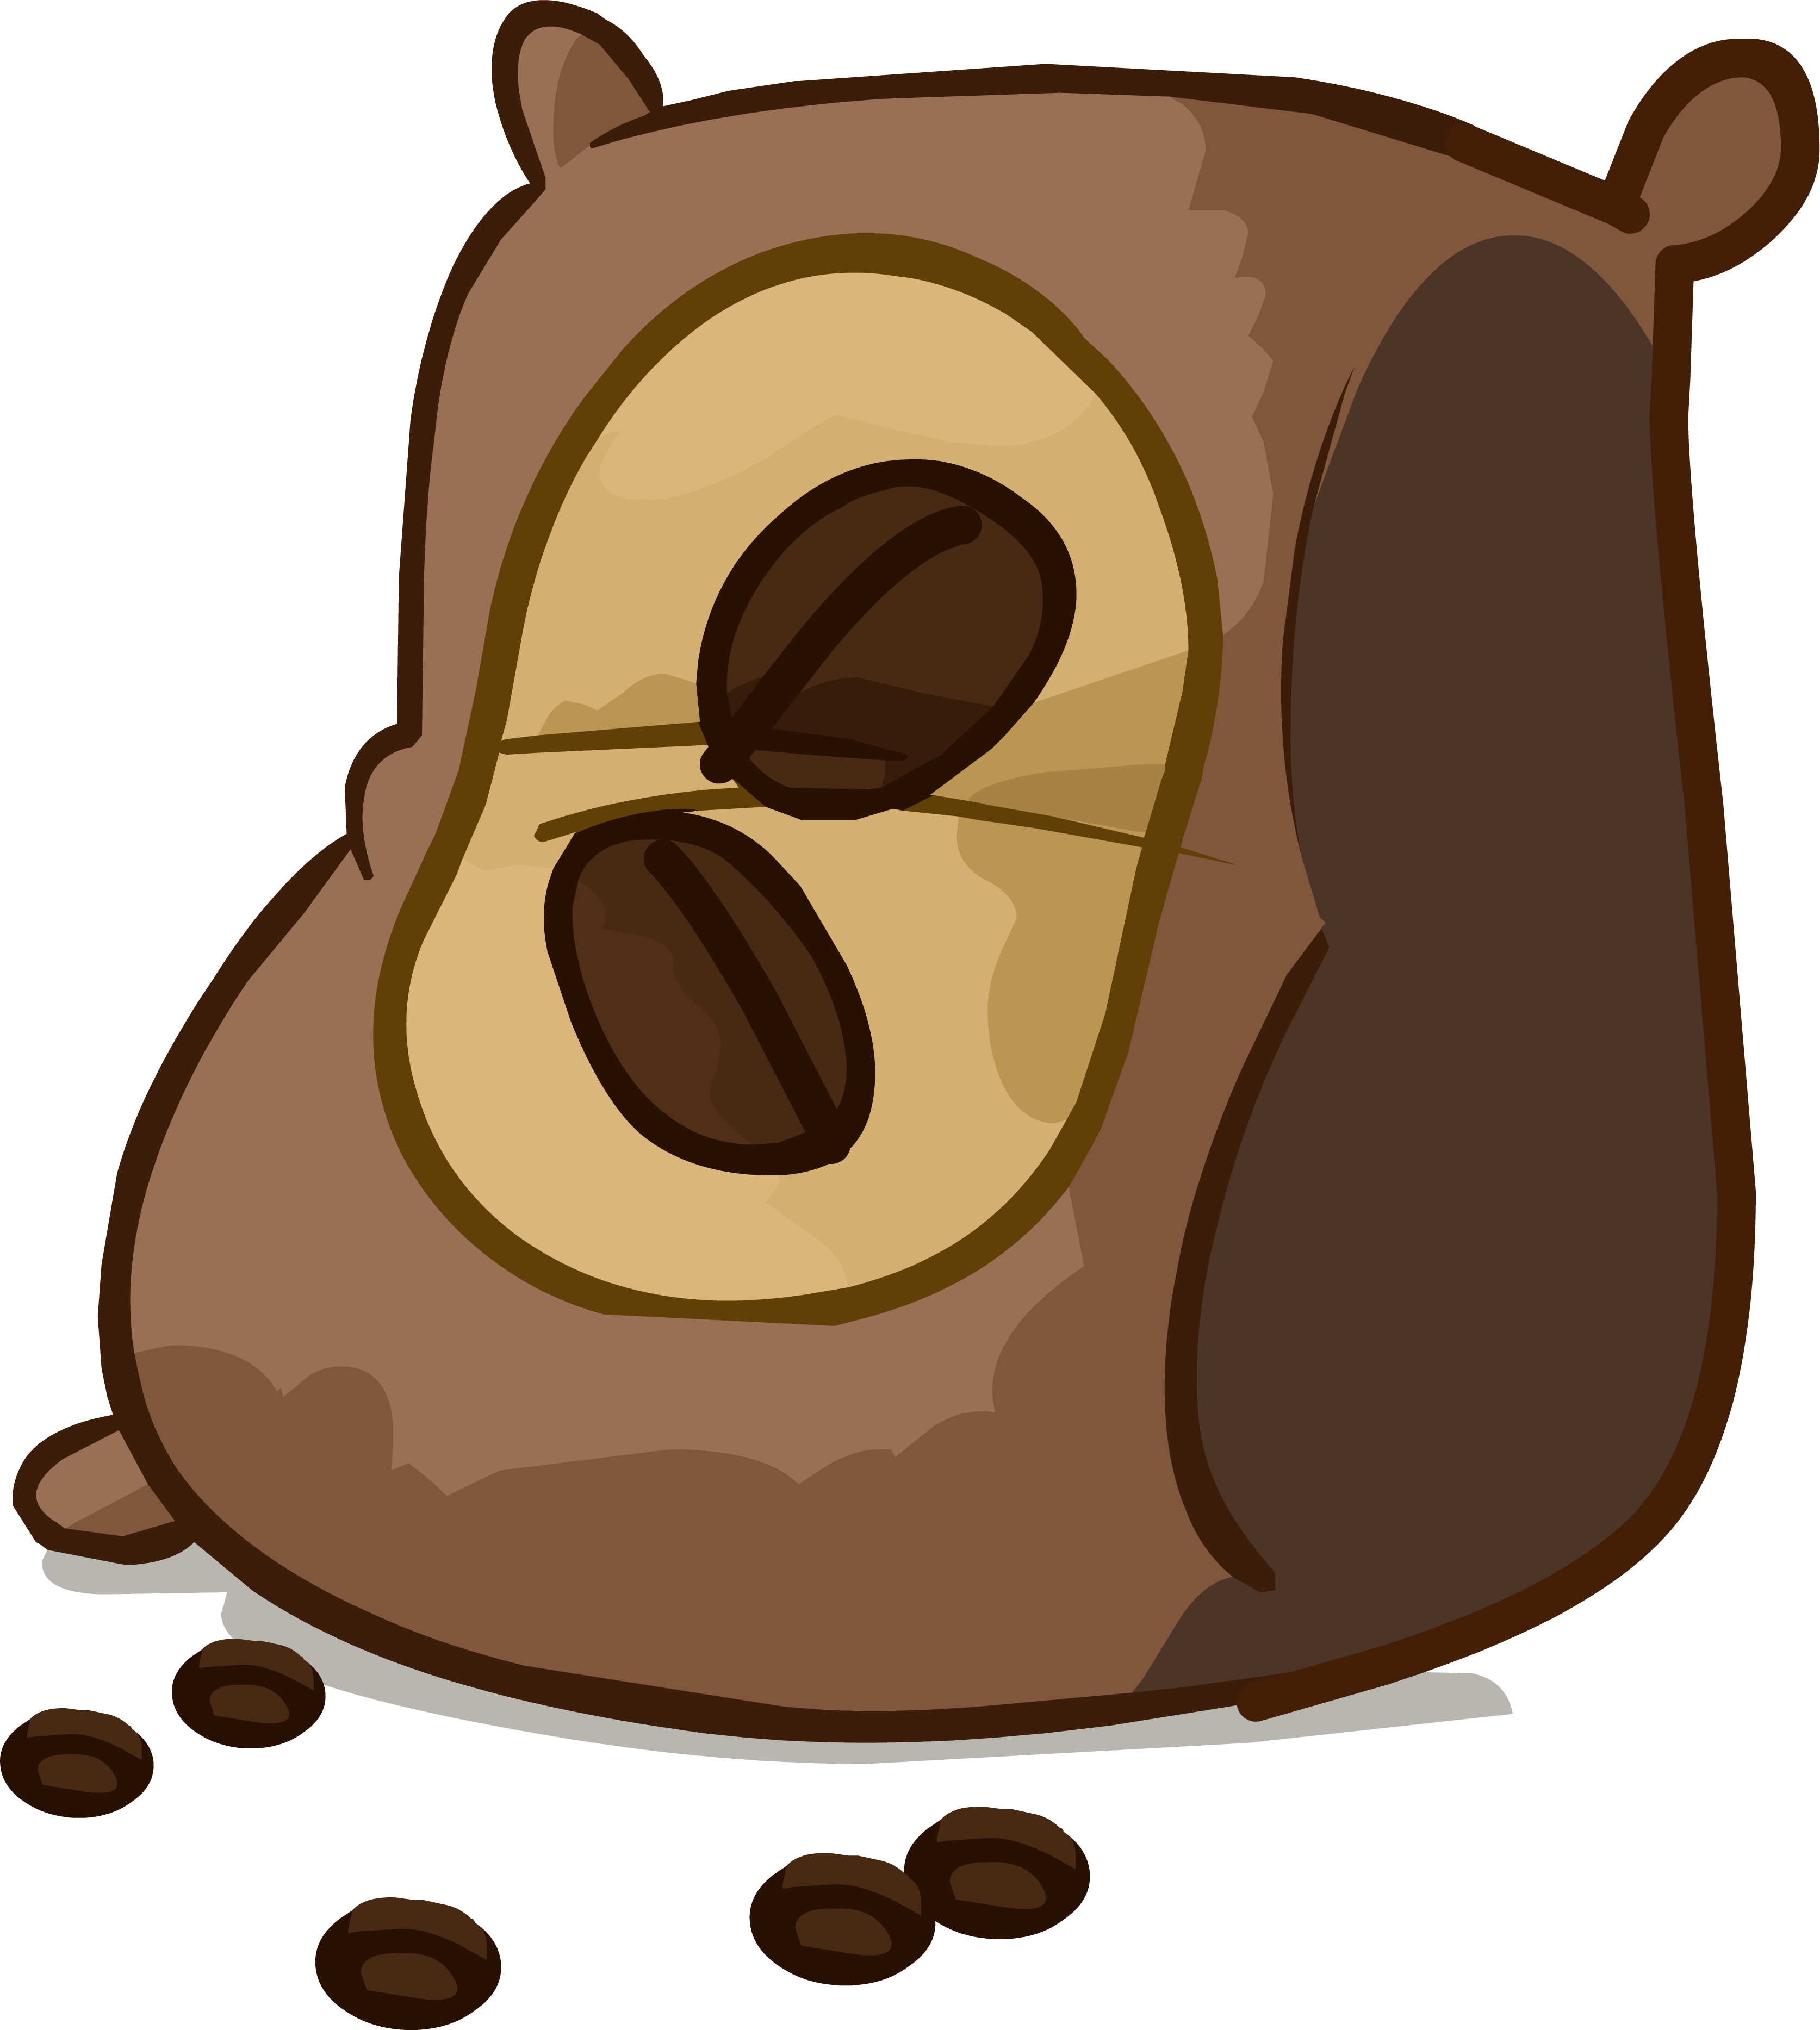 Image bag of png. Coffee clipart icon